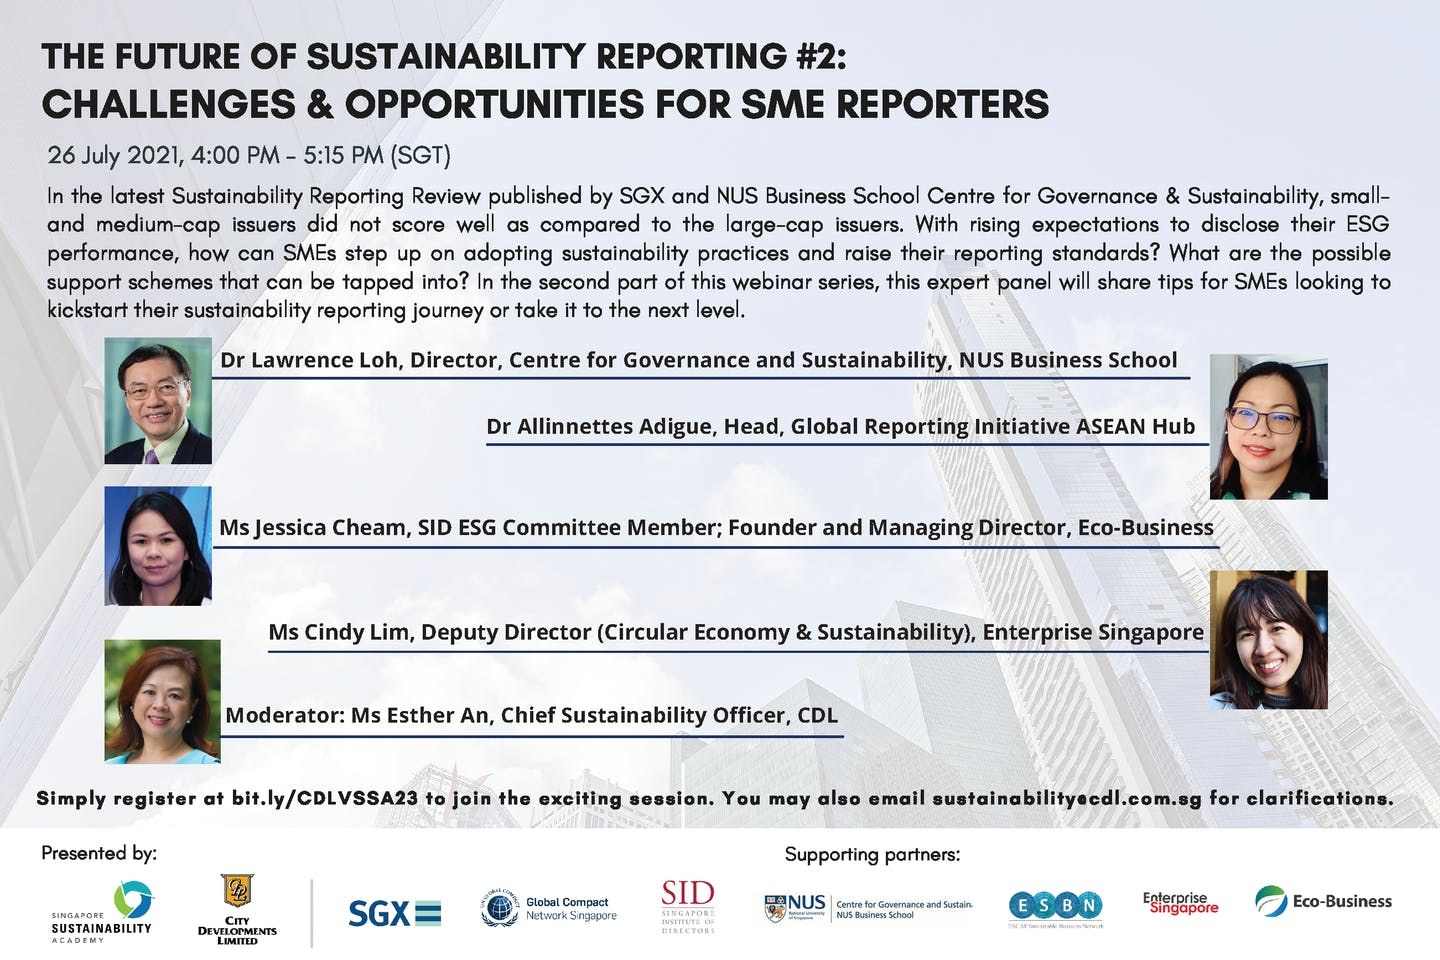 The future of sustainability reporting #2: Challenges & opportunities for SME reporters